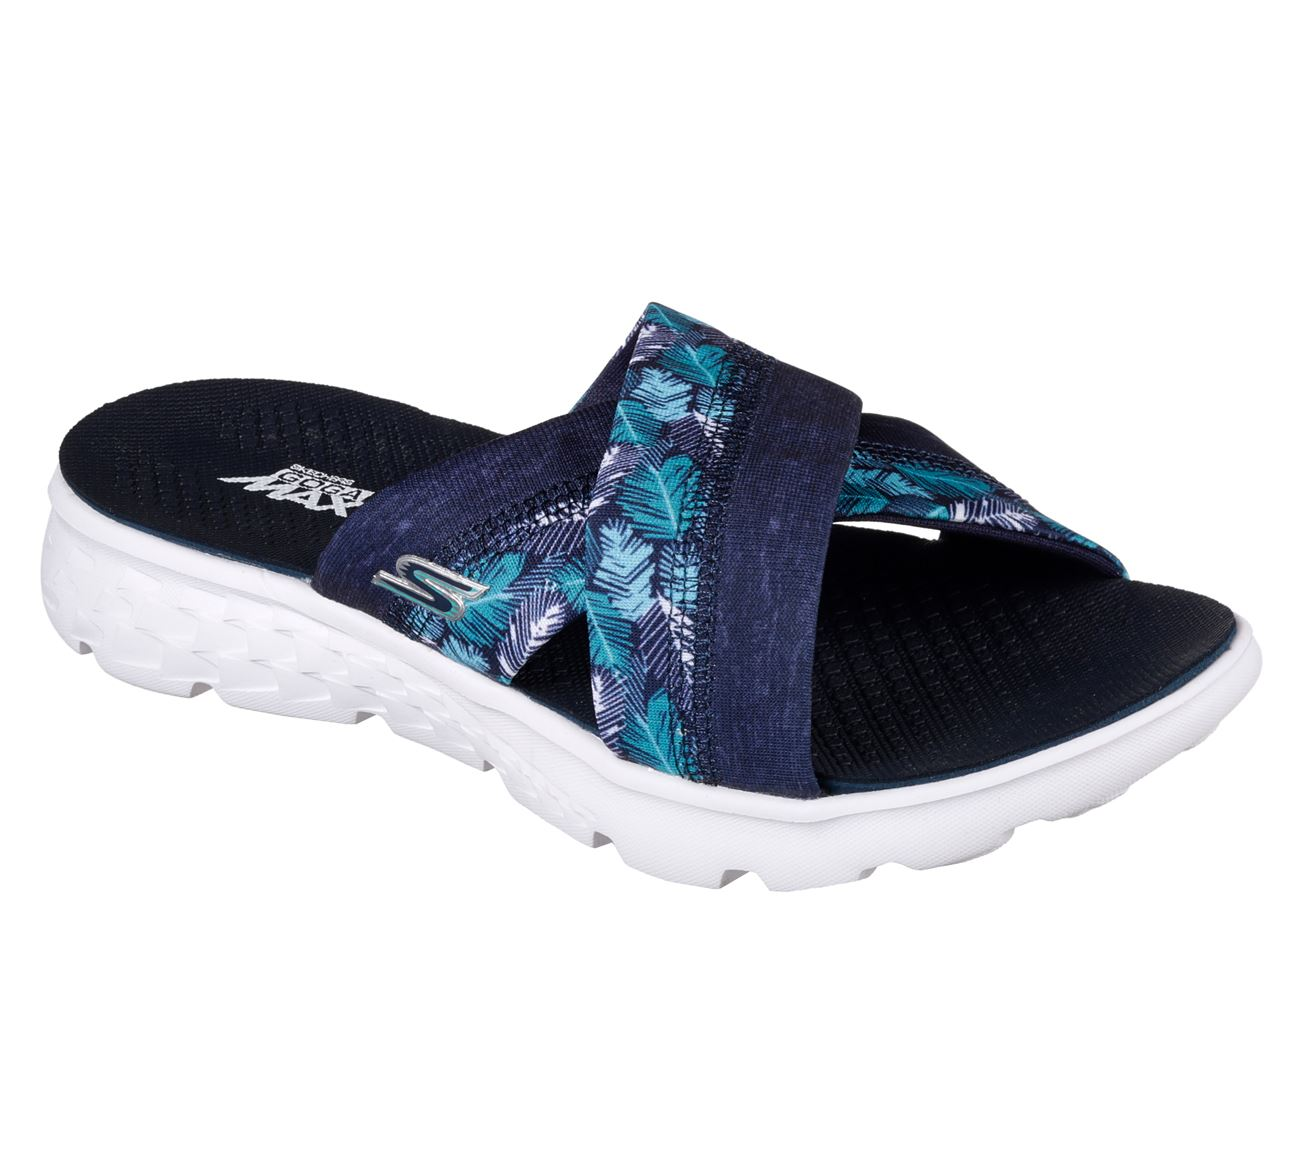 skechers performance women 39 s on the go 400 tropical sandal ebay. Black Bedroom Furniture Sets. Home Design Ideas